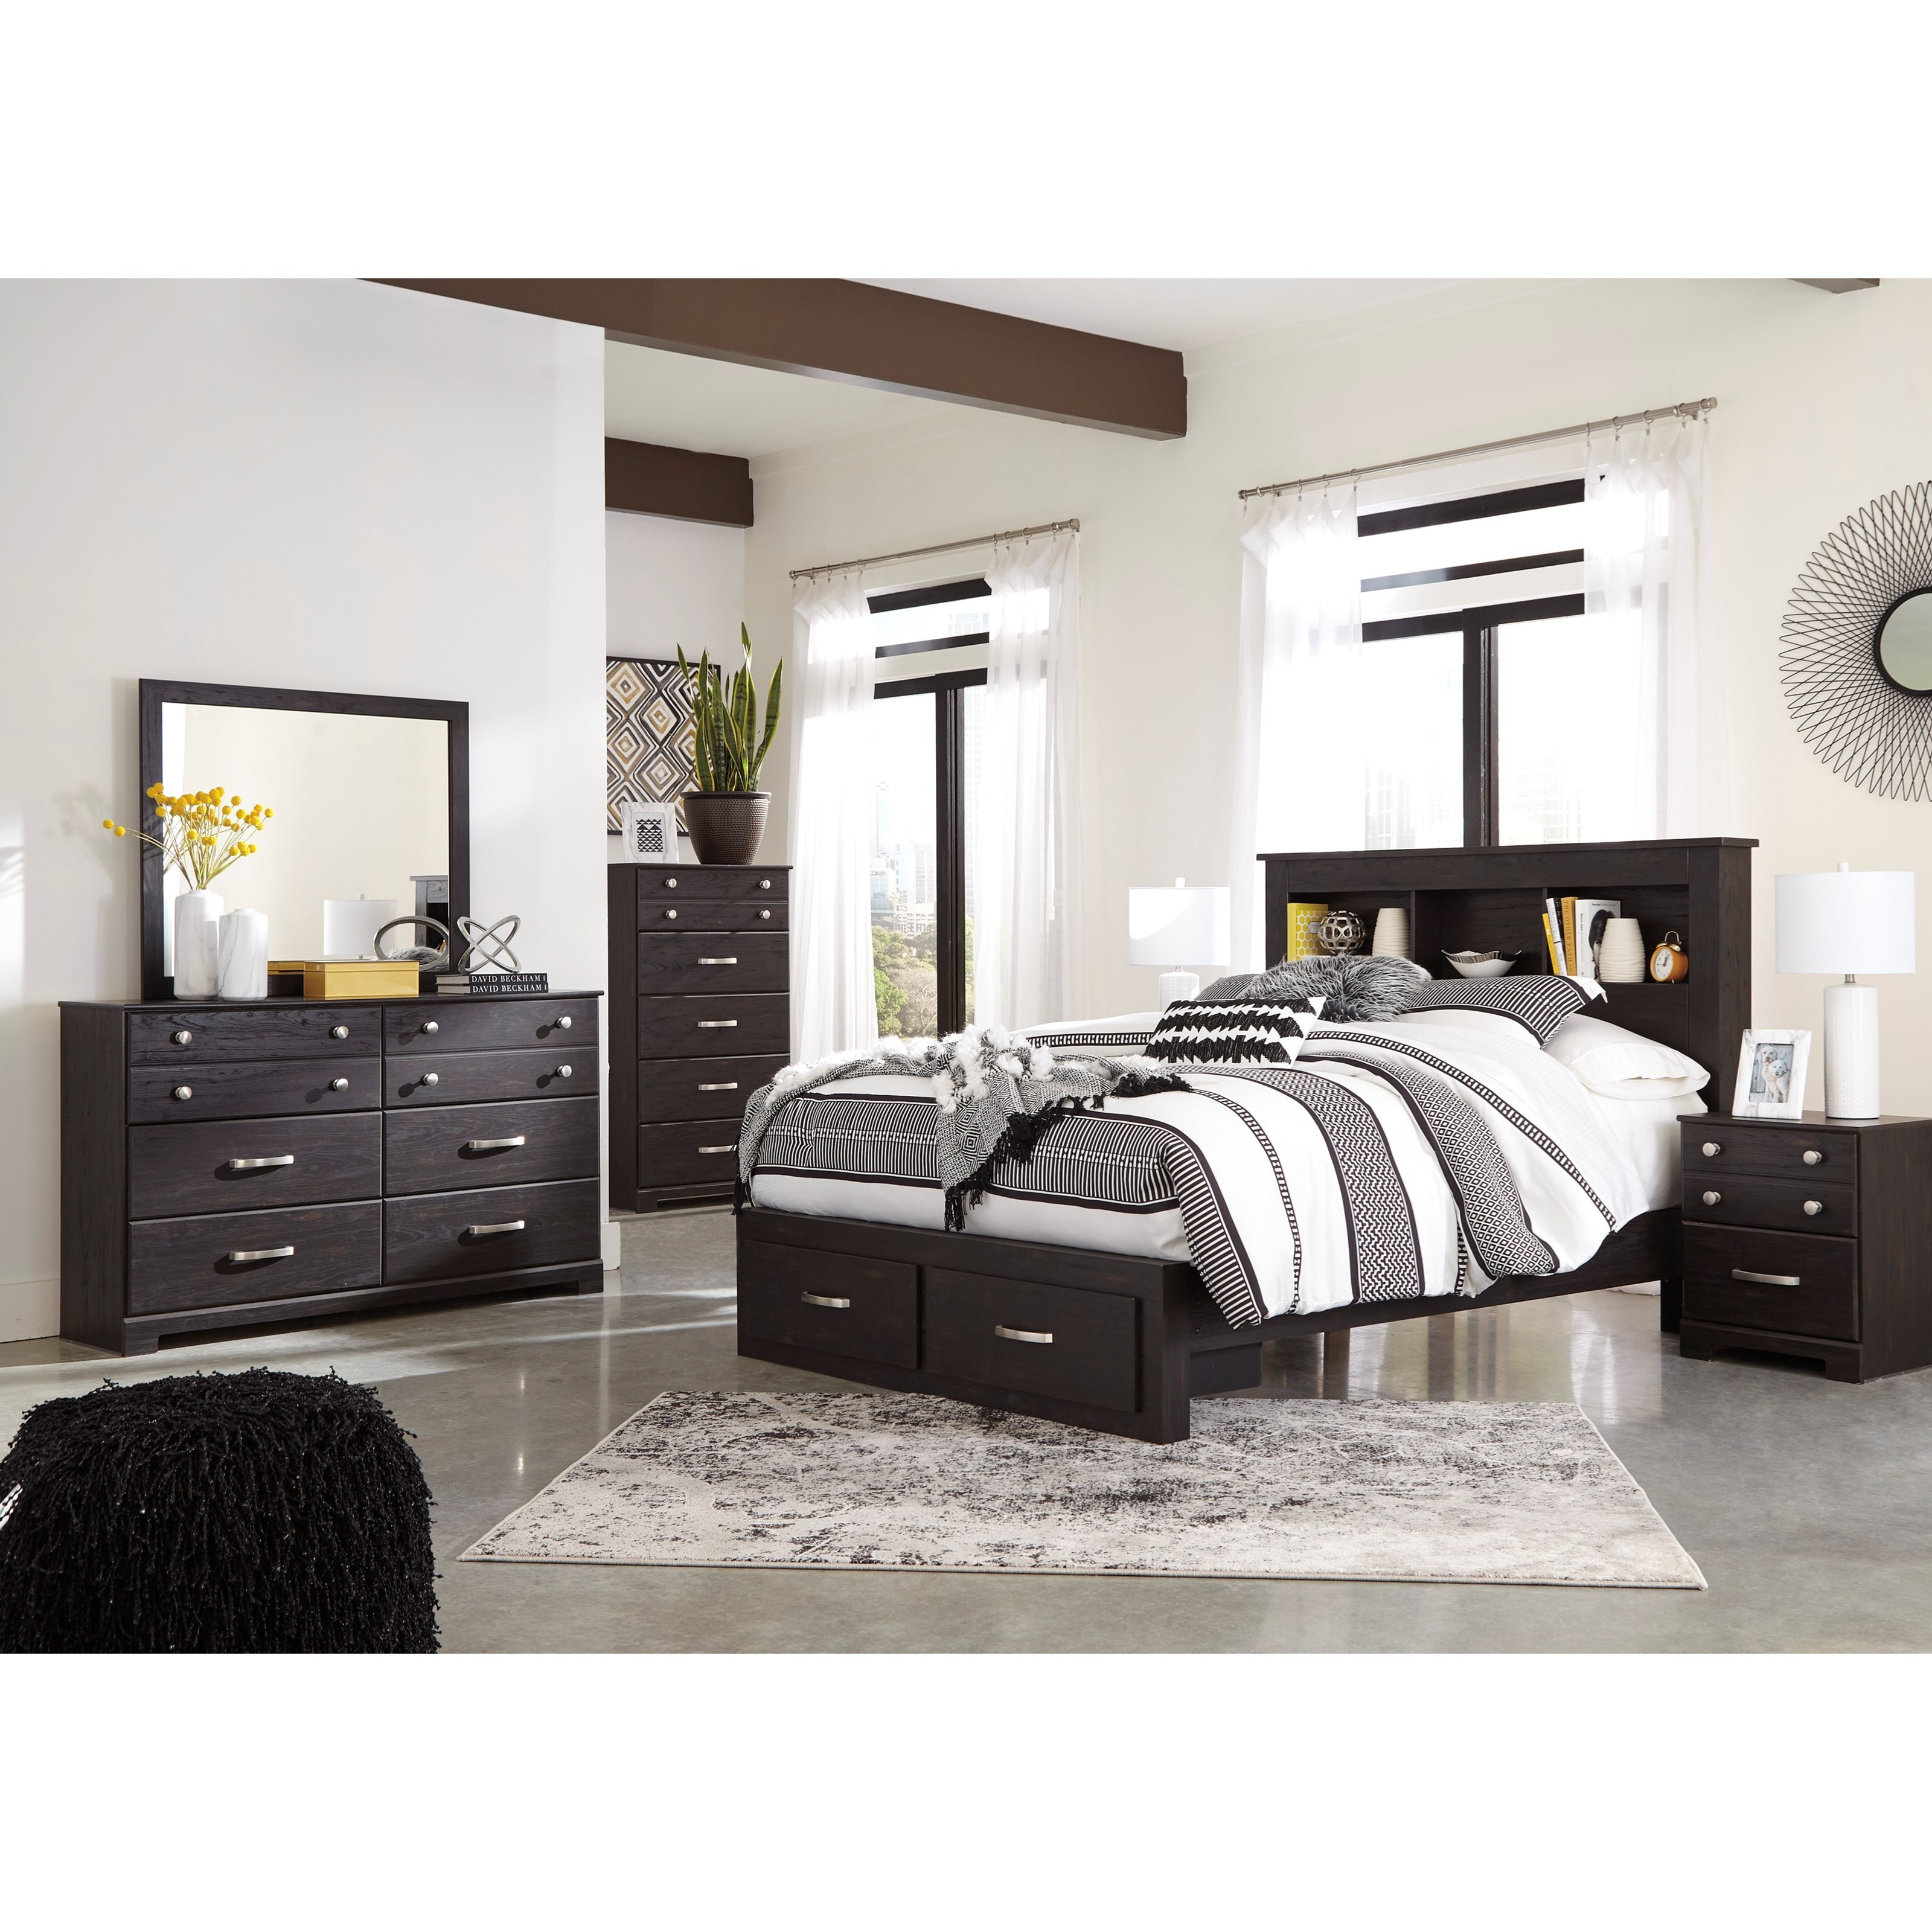 Signature Design By Ashley Reylow Queen Bedroom Group